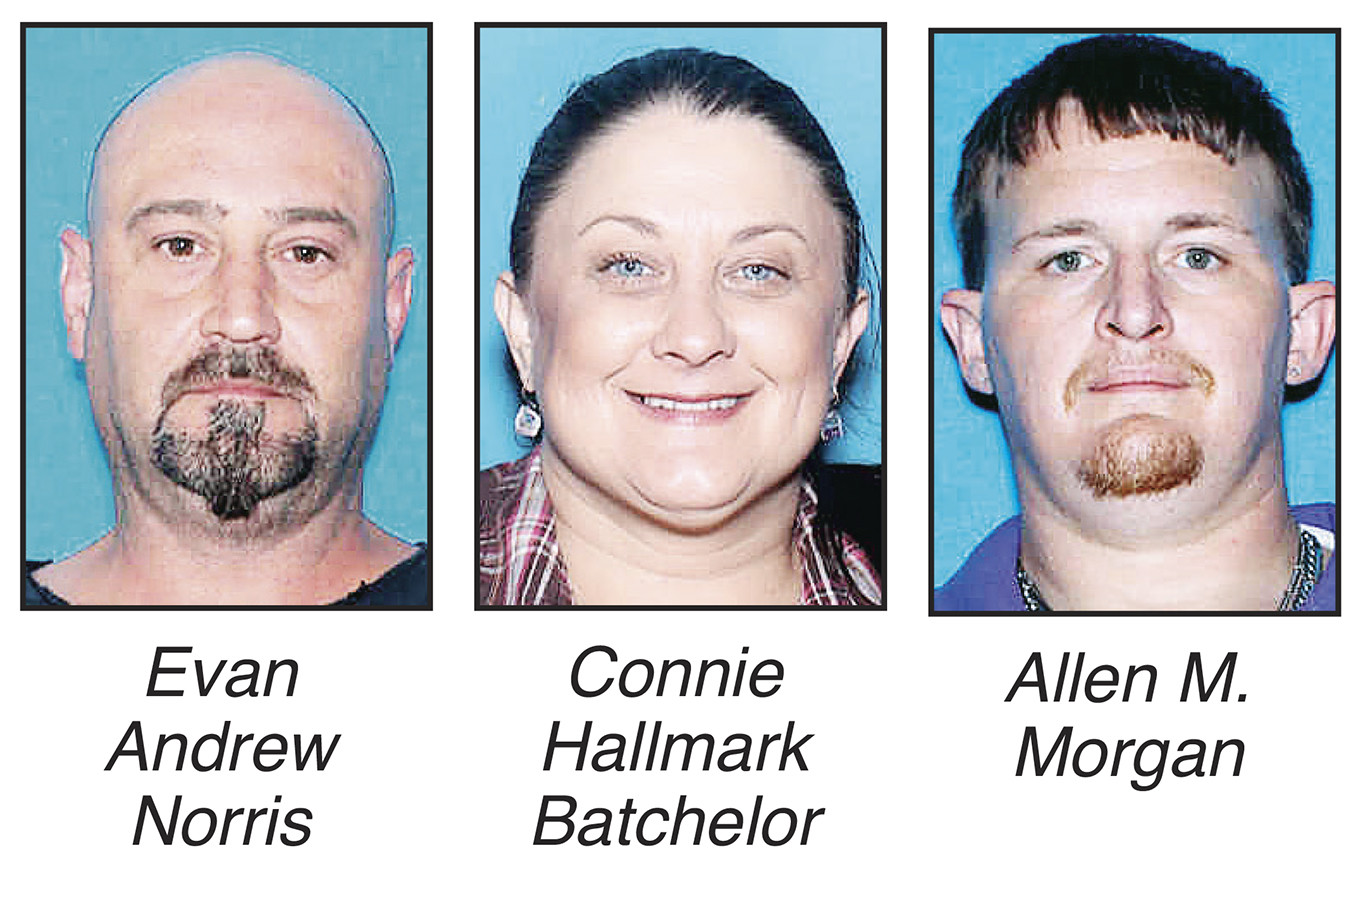 Three Walker County residents received federal prison sentences this month for conspiring to traffic methamphetamine, Walker County Sheriff Jim Underwood announced Thursday.